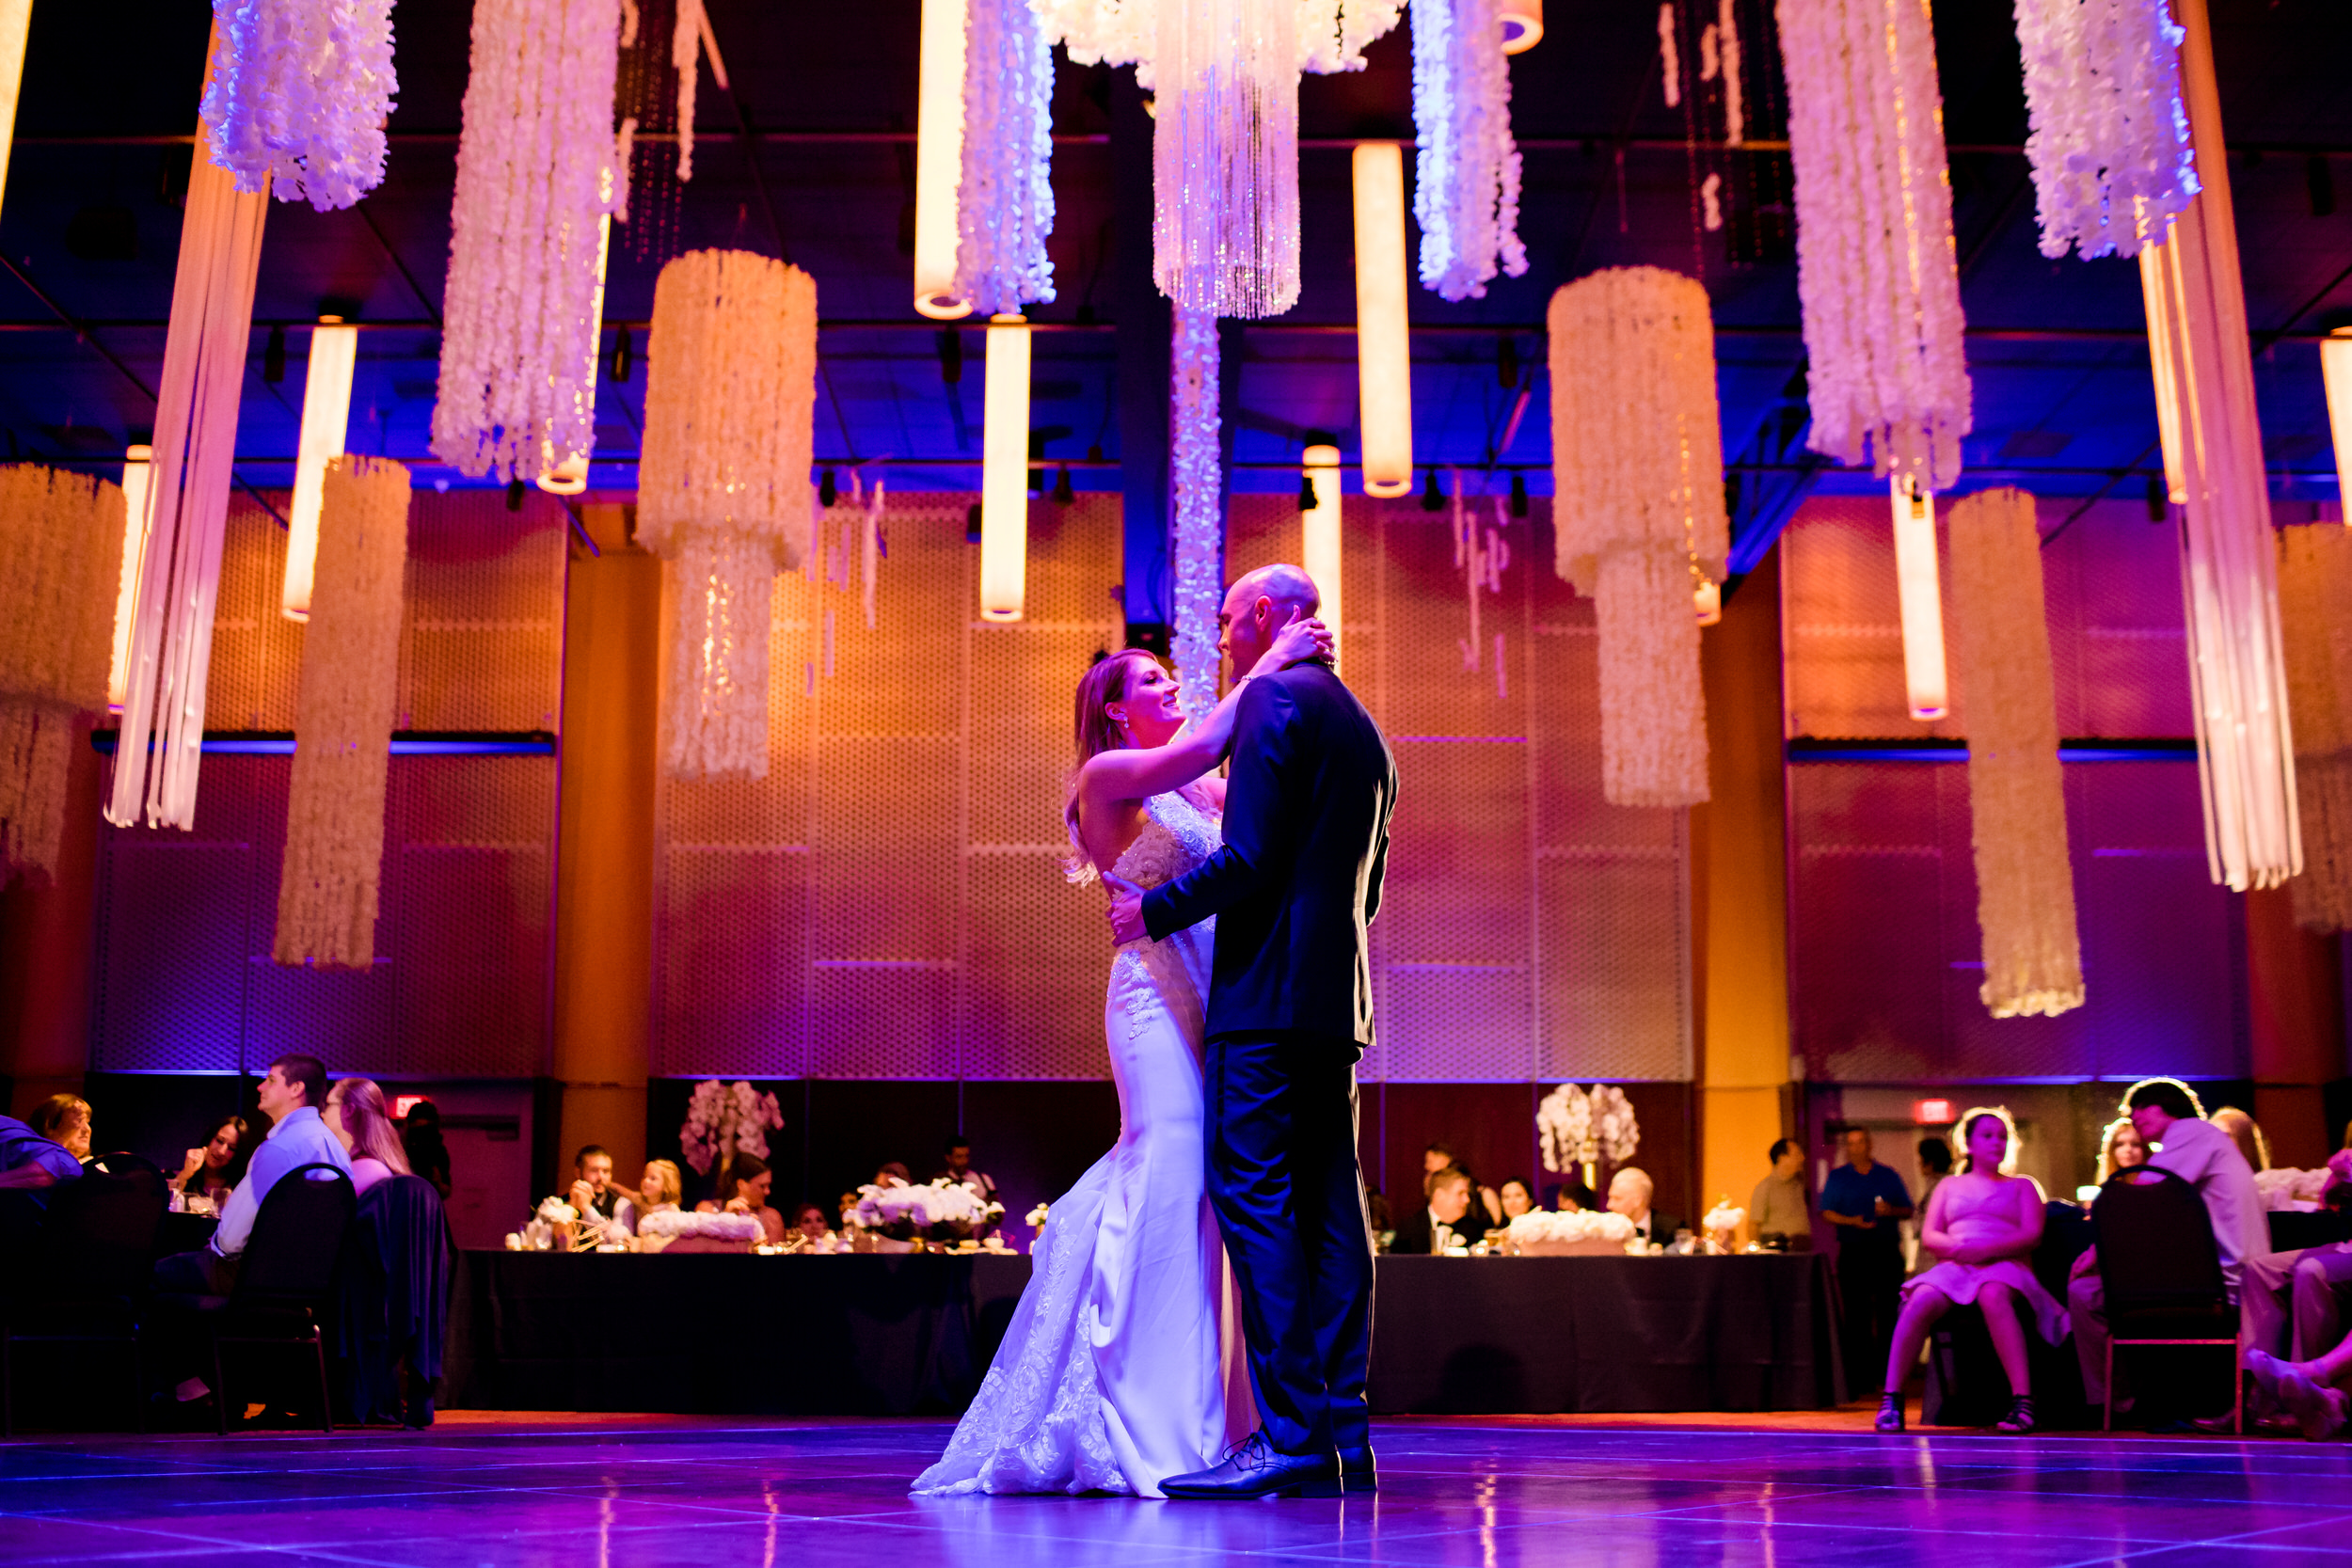 salem_convention_center_wedding_stark_photography_028